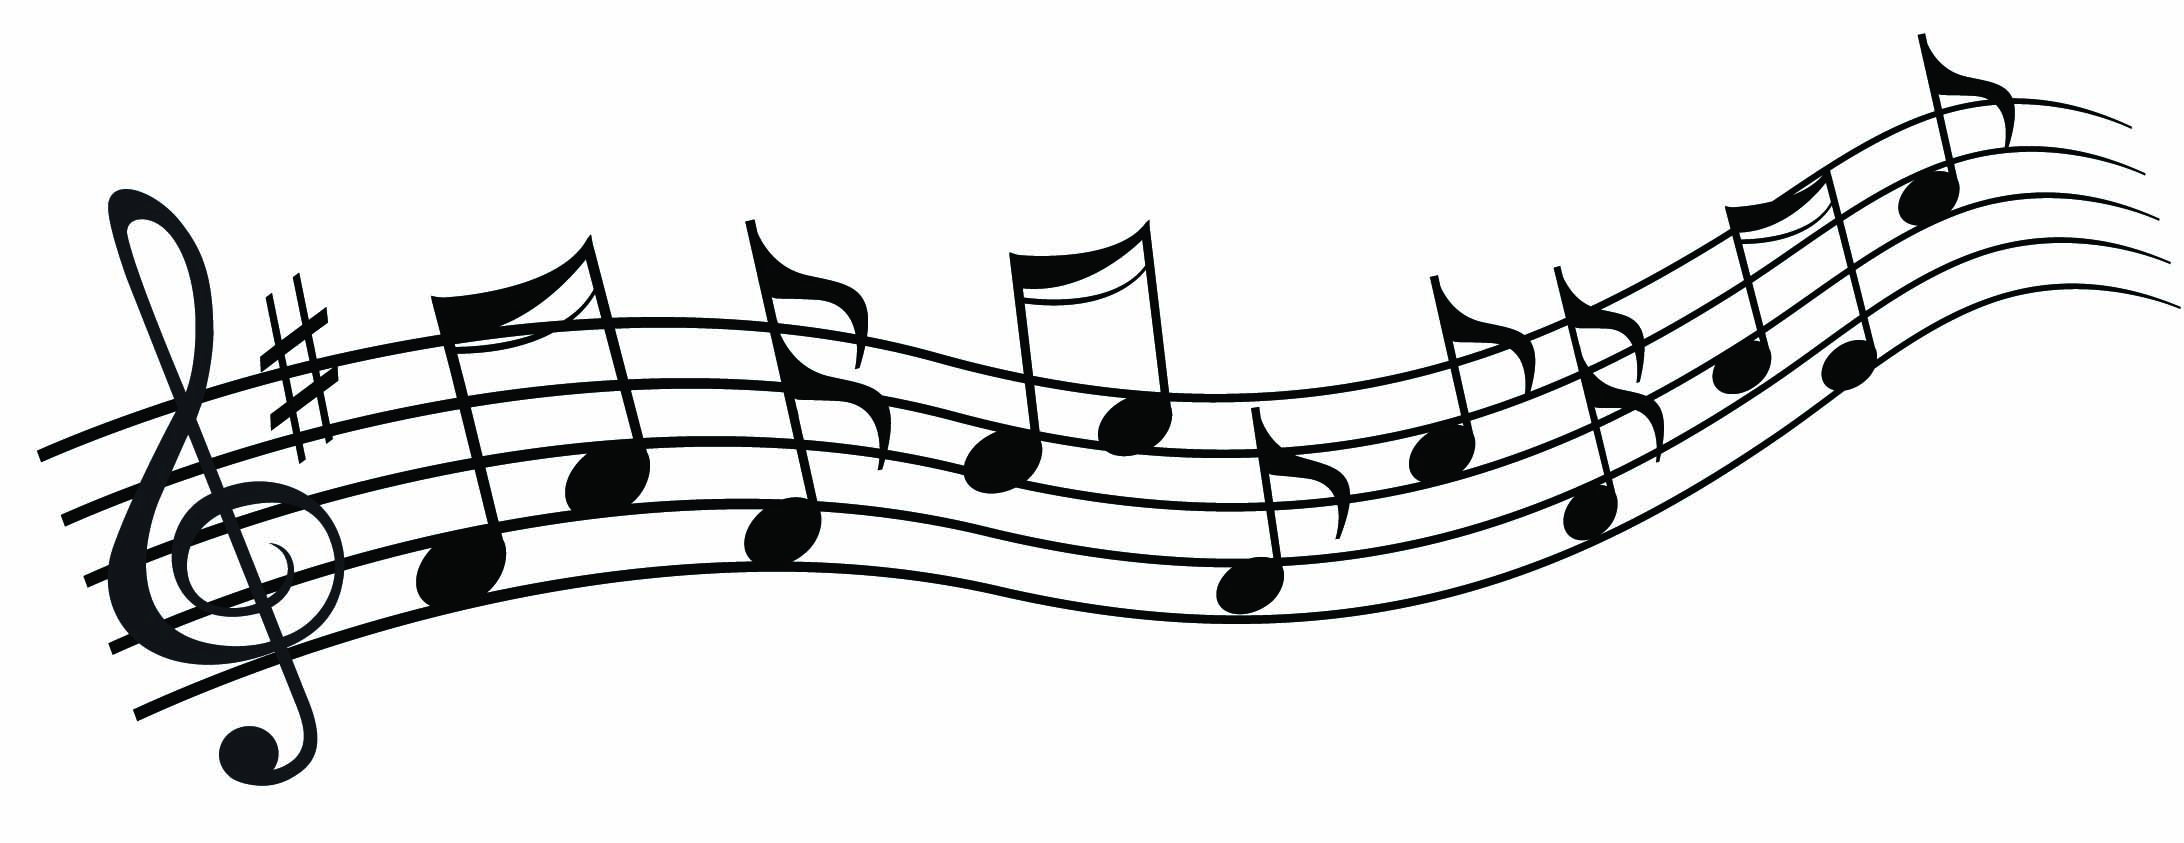 Free music clipart. Black and white download